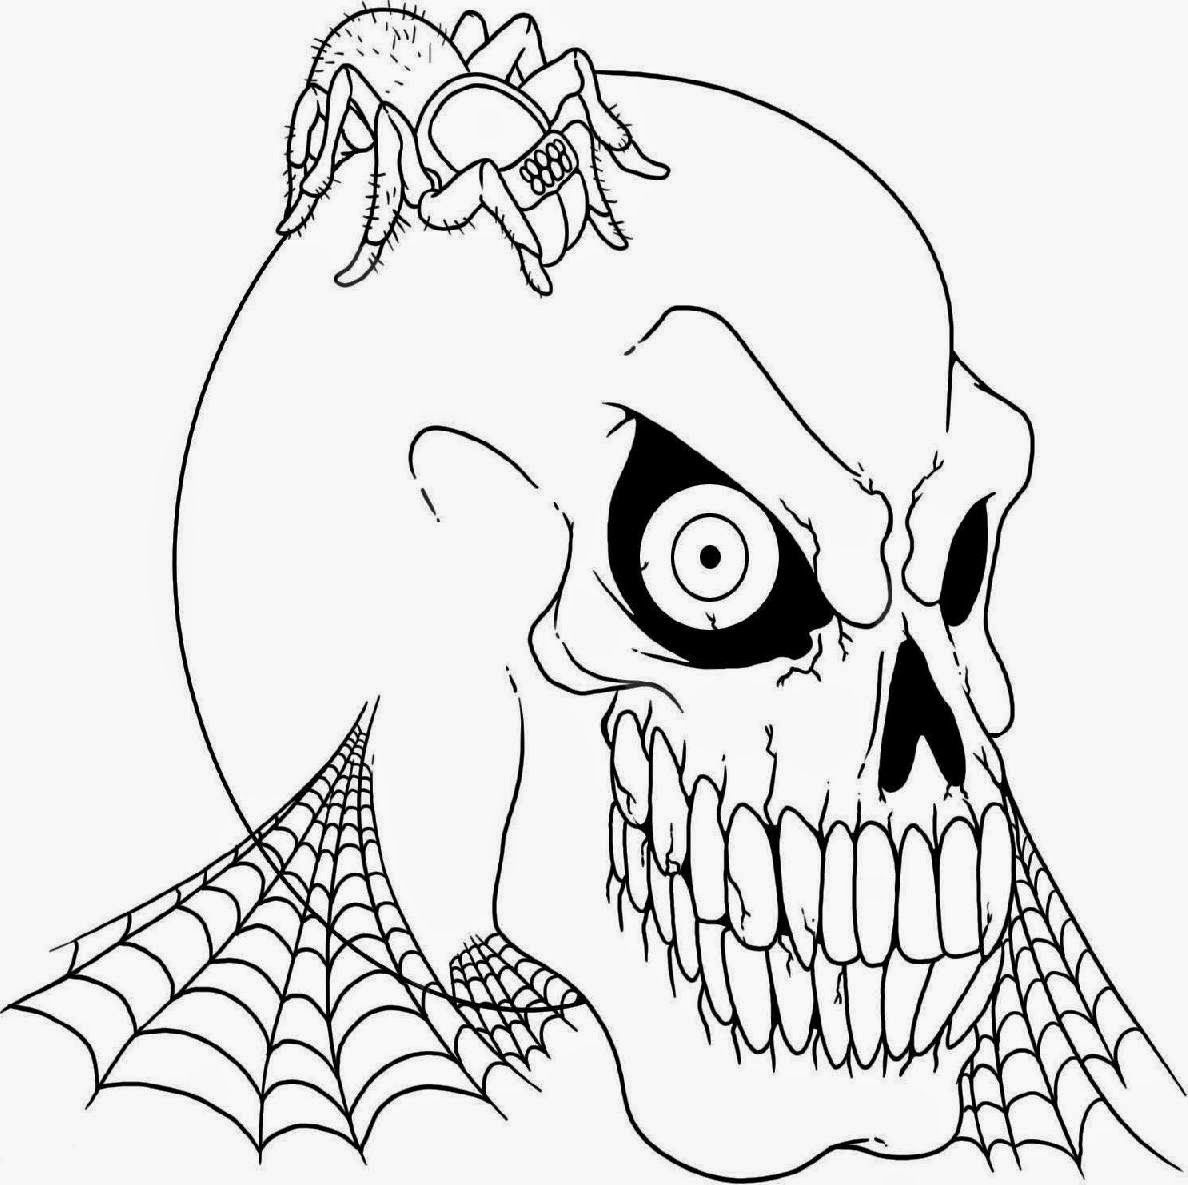 Halloween Scary Masks Coloring Pages - Coloring Home